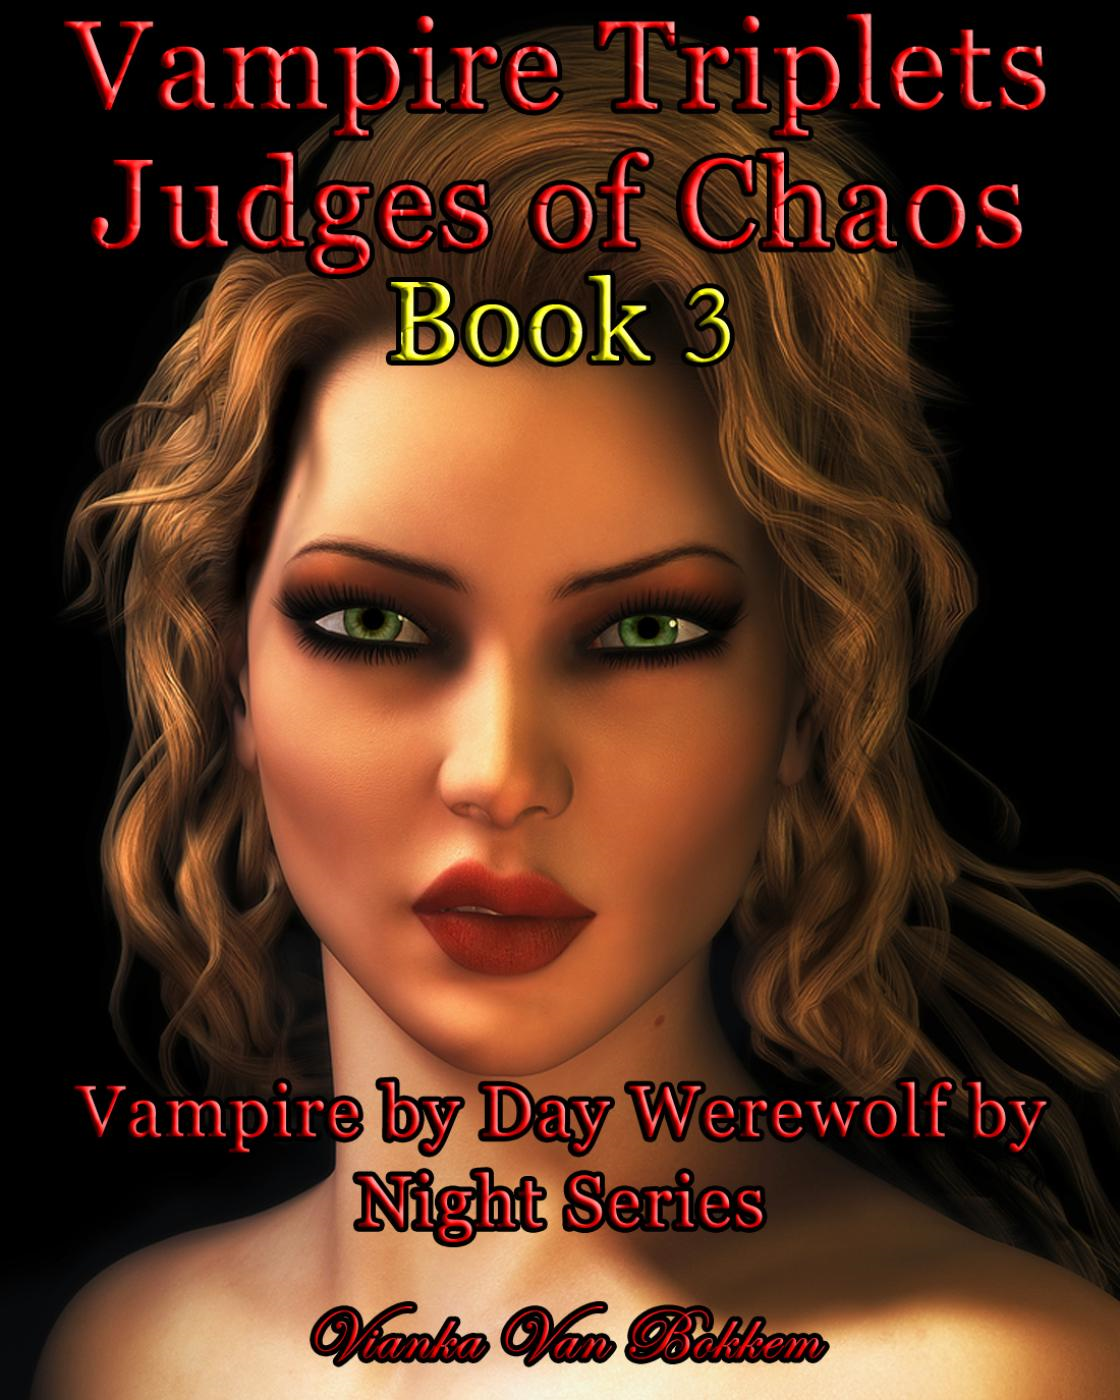 Vampire Triplets: Judges of Chaos Book 3 (Vampire by Day Werewolf by Night, #3)